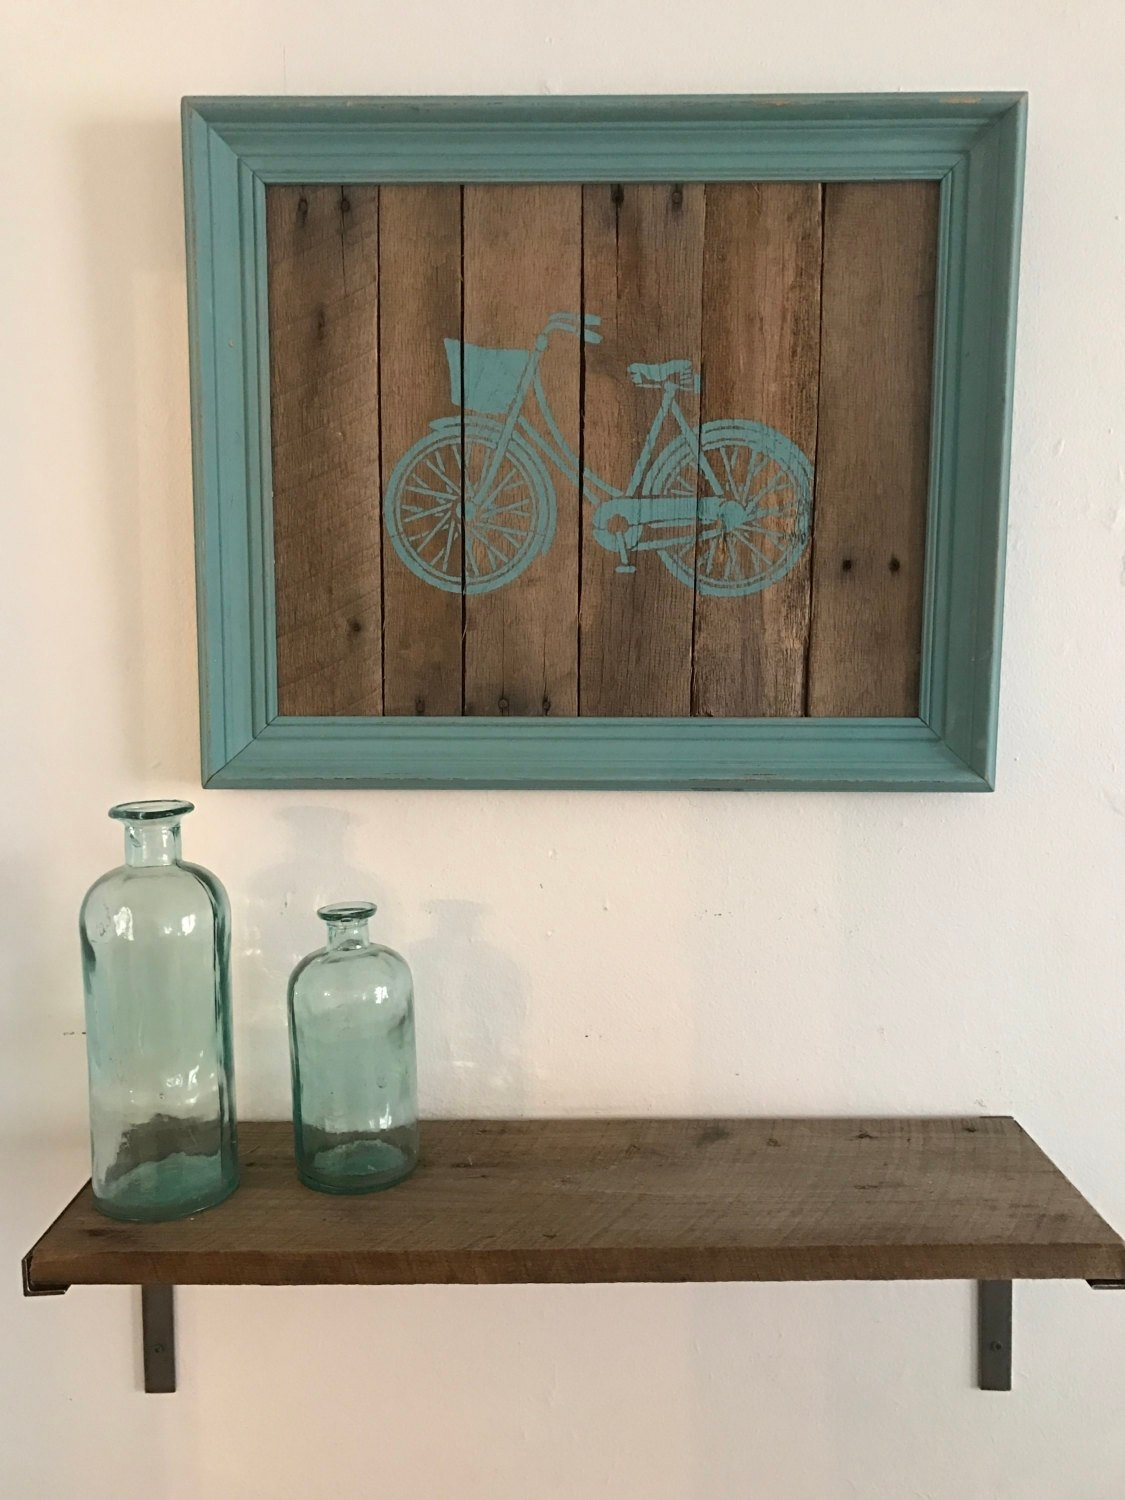 Bicycle Pallet Wall Art Regarding Recent Pallet Wall Art (View 1 of 15)